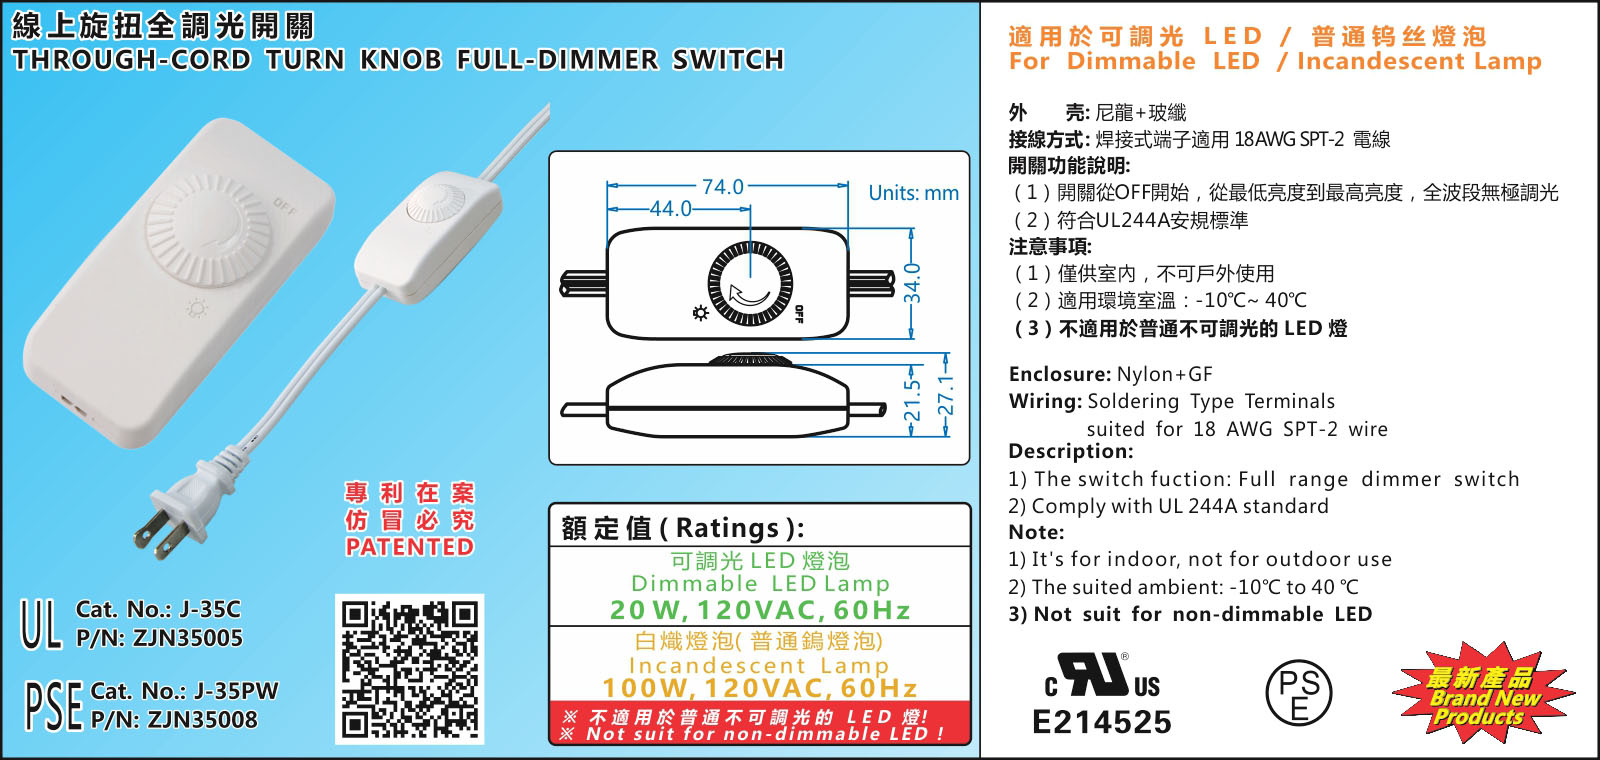 SMALL SIZE THROUGH-CORD FULL-DIMMER SWITCH, J-35C